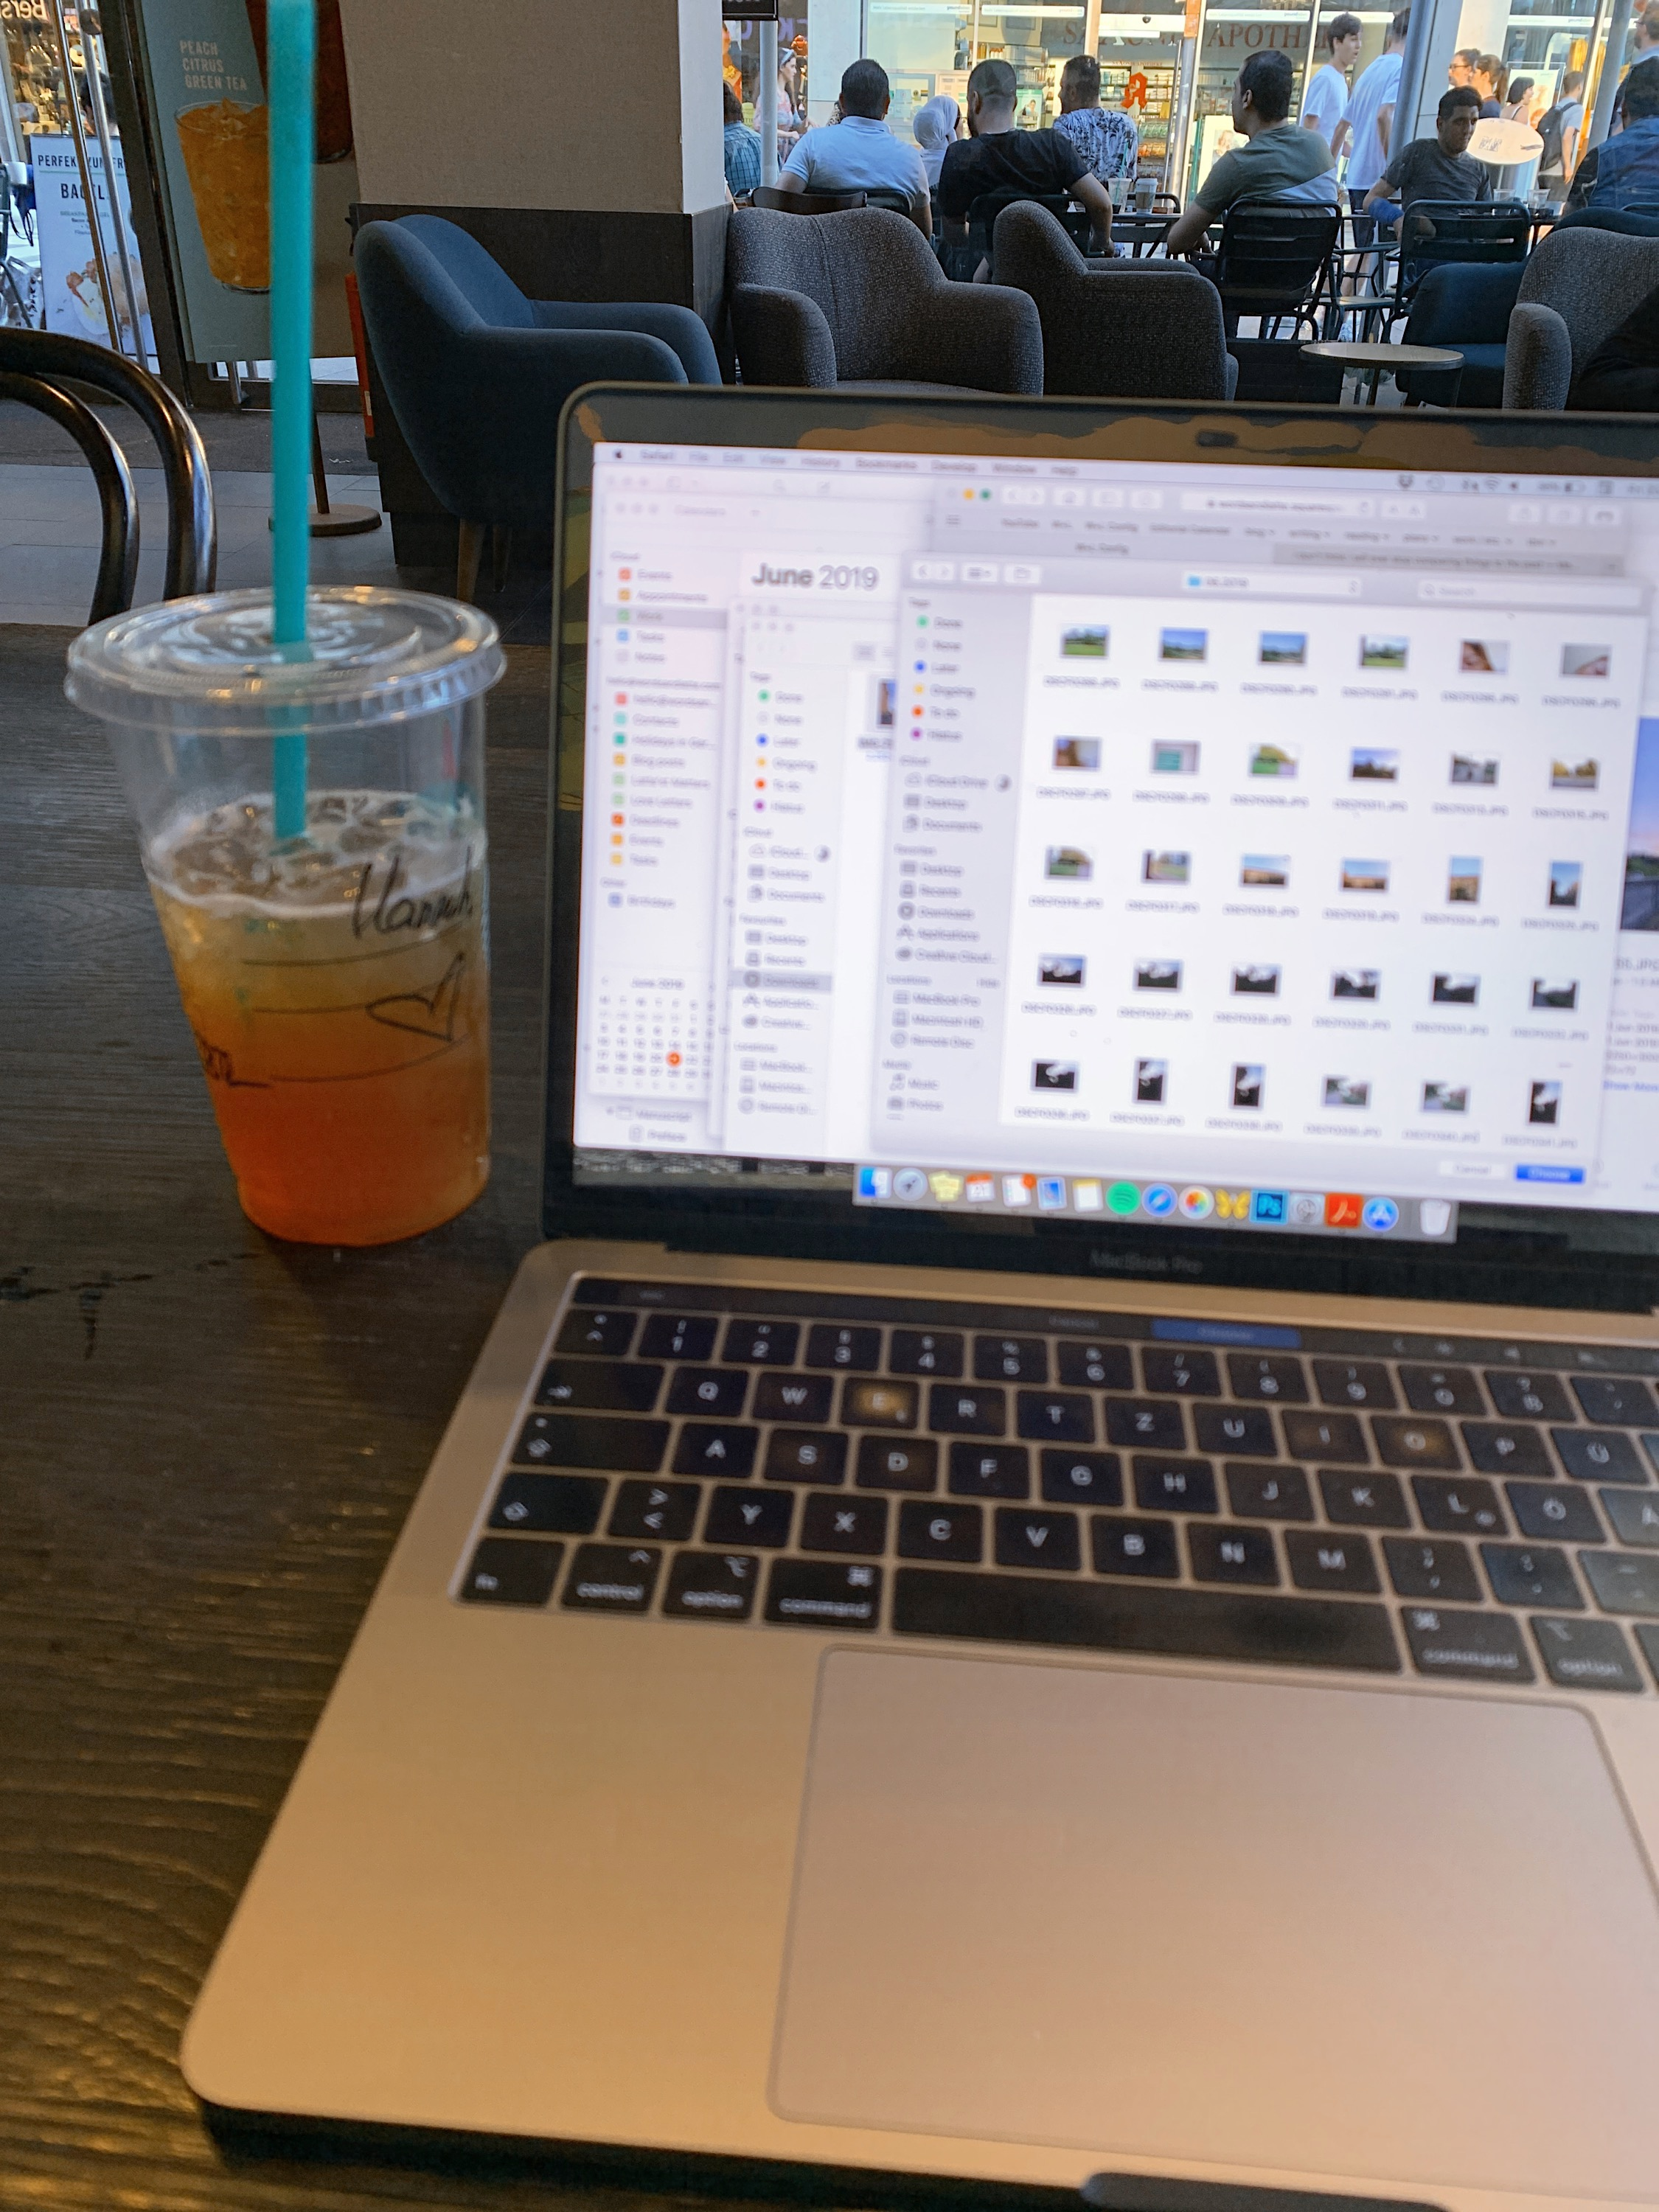 … and a lot of writing and iced drinks to flee the scorching hot weather